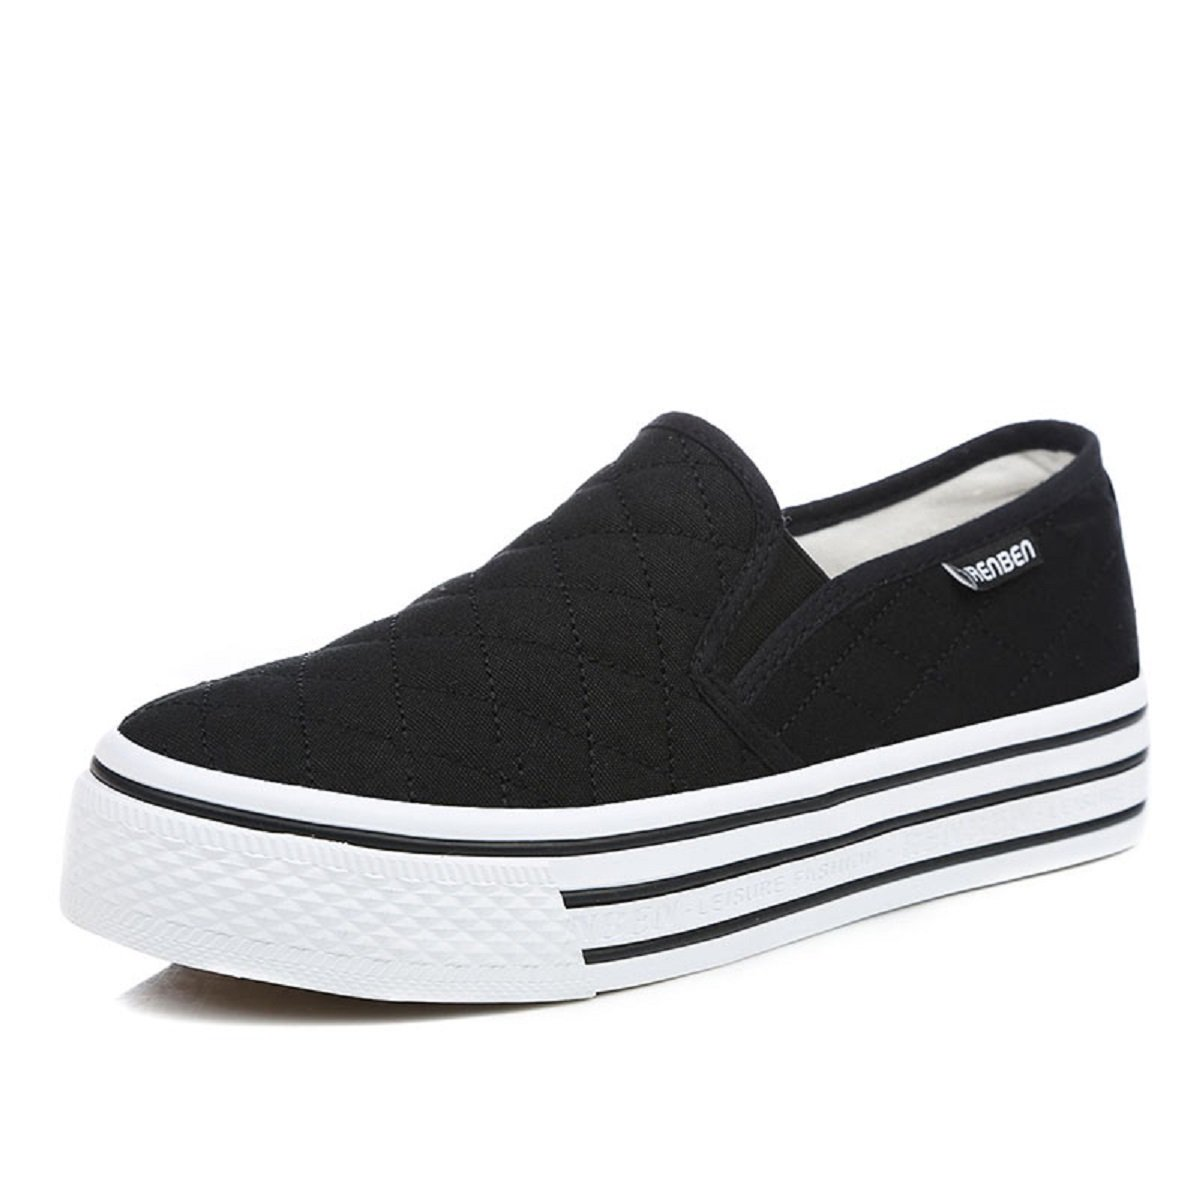 9e725c9a0a6c Amazon.com  Renben Womens Canvas Slip On Flat Casual Sneaker Platform  Fashion Low Top Shoes  Clothing